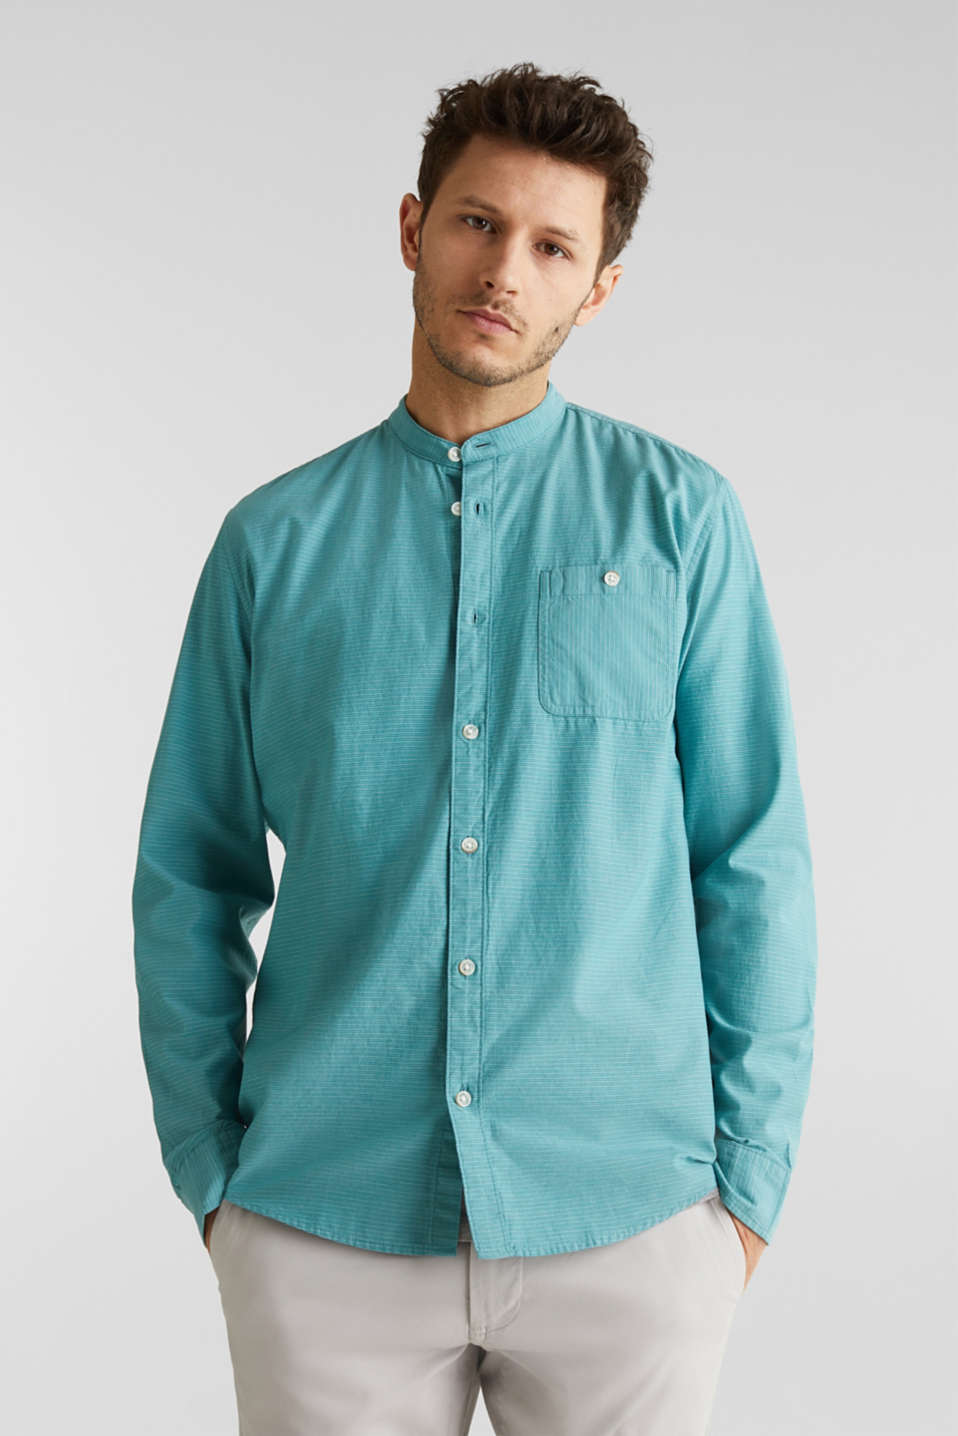 Esprit - Shirt with band collar, 100% cotton